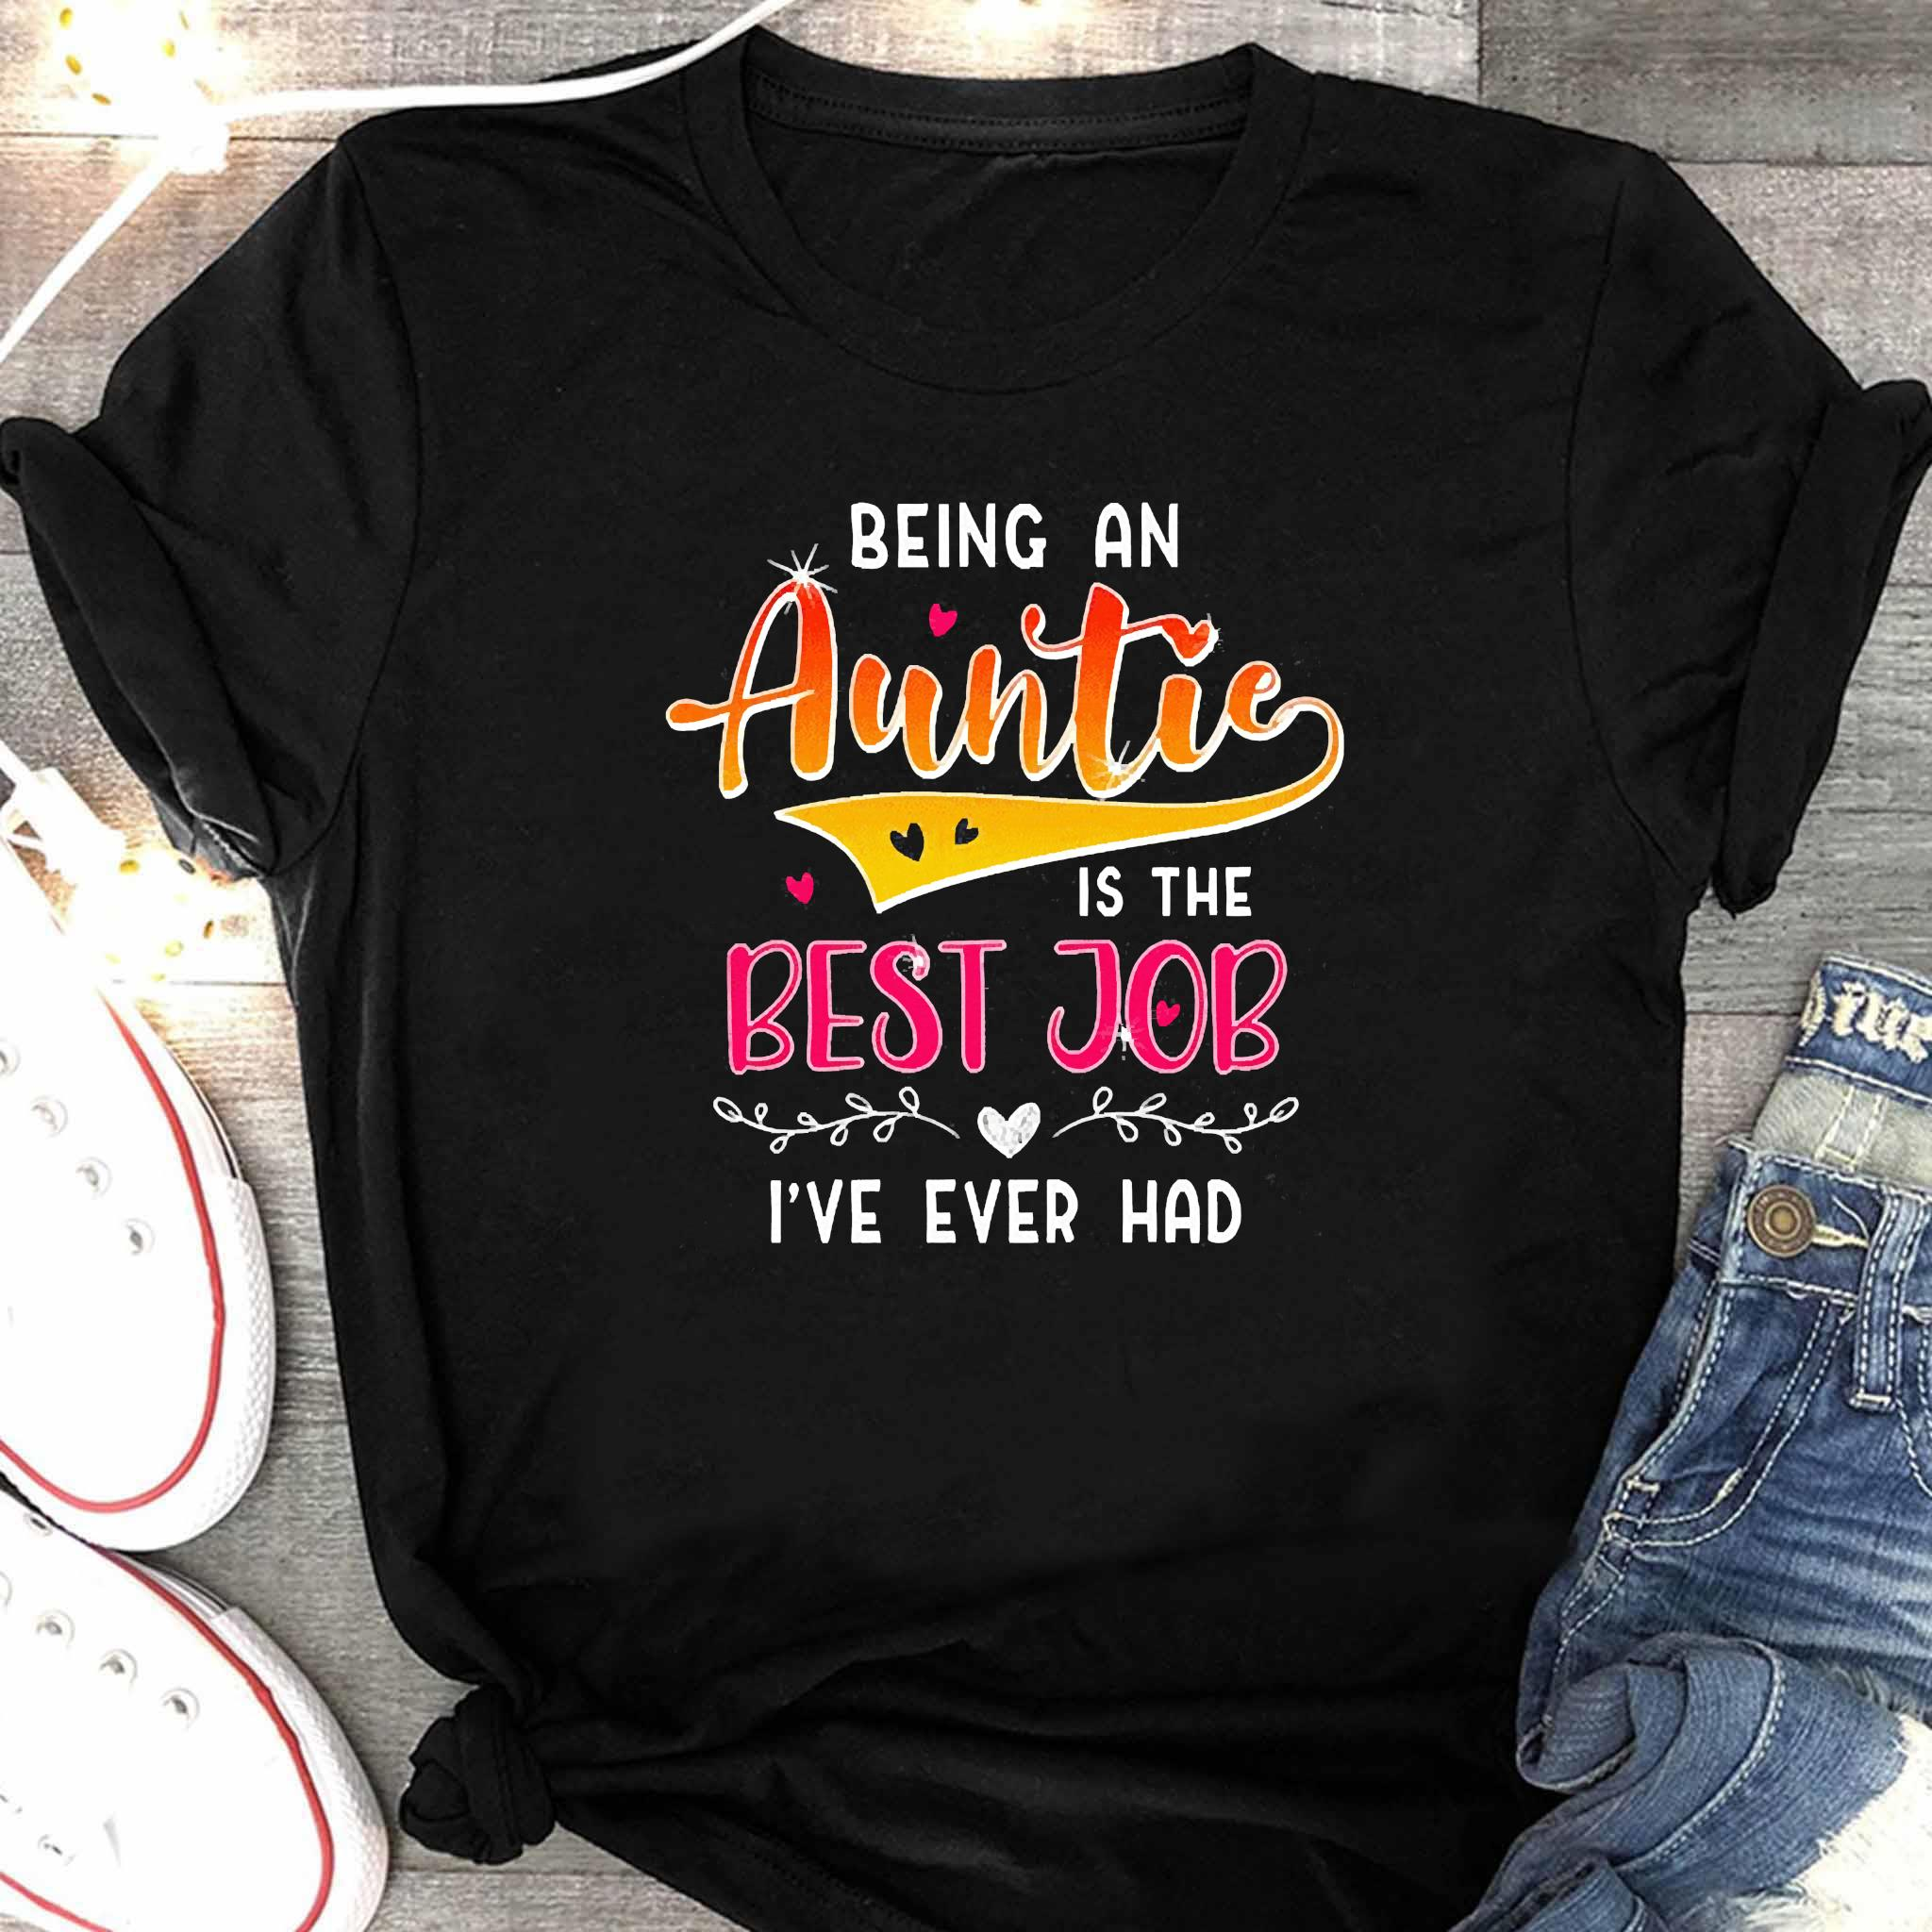 Being An Auntie Is The Best Job Shirt Women's Shirt